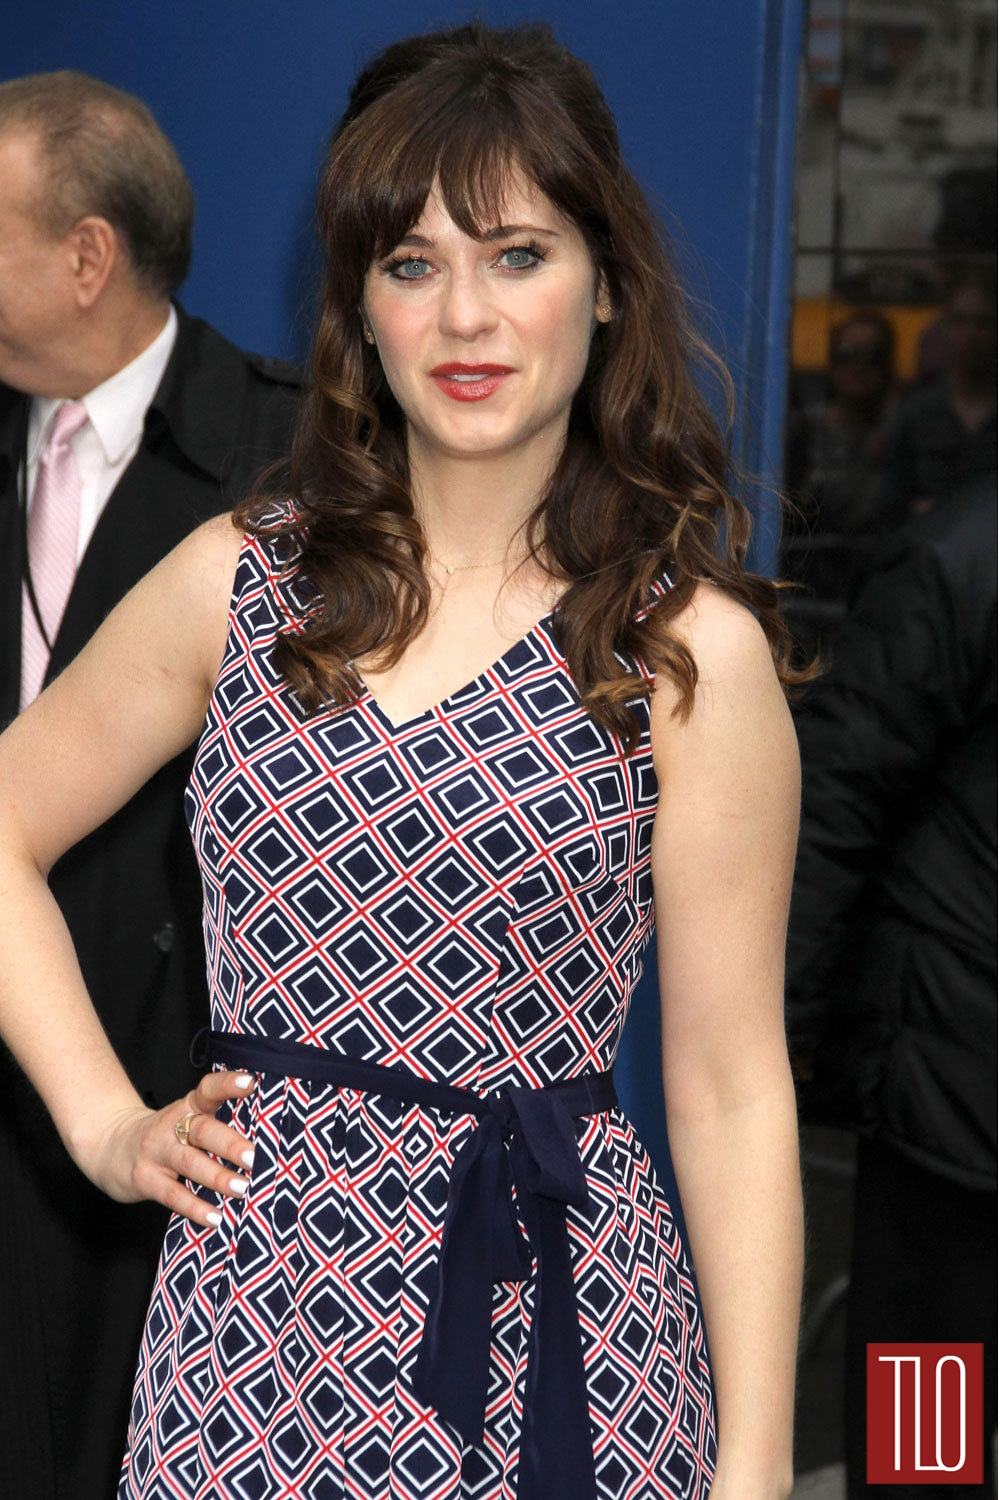 Zooey-Deschanel-Good-Morning-America-Tom-Lorenzo-Site-TLO (1)